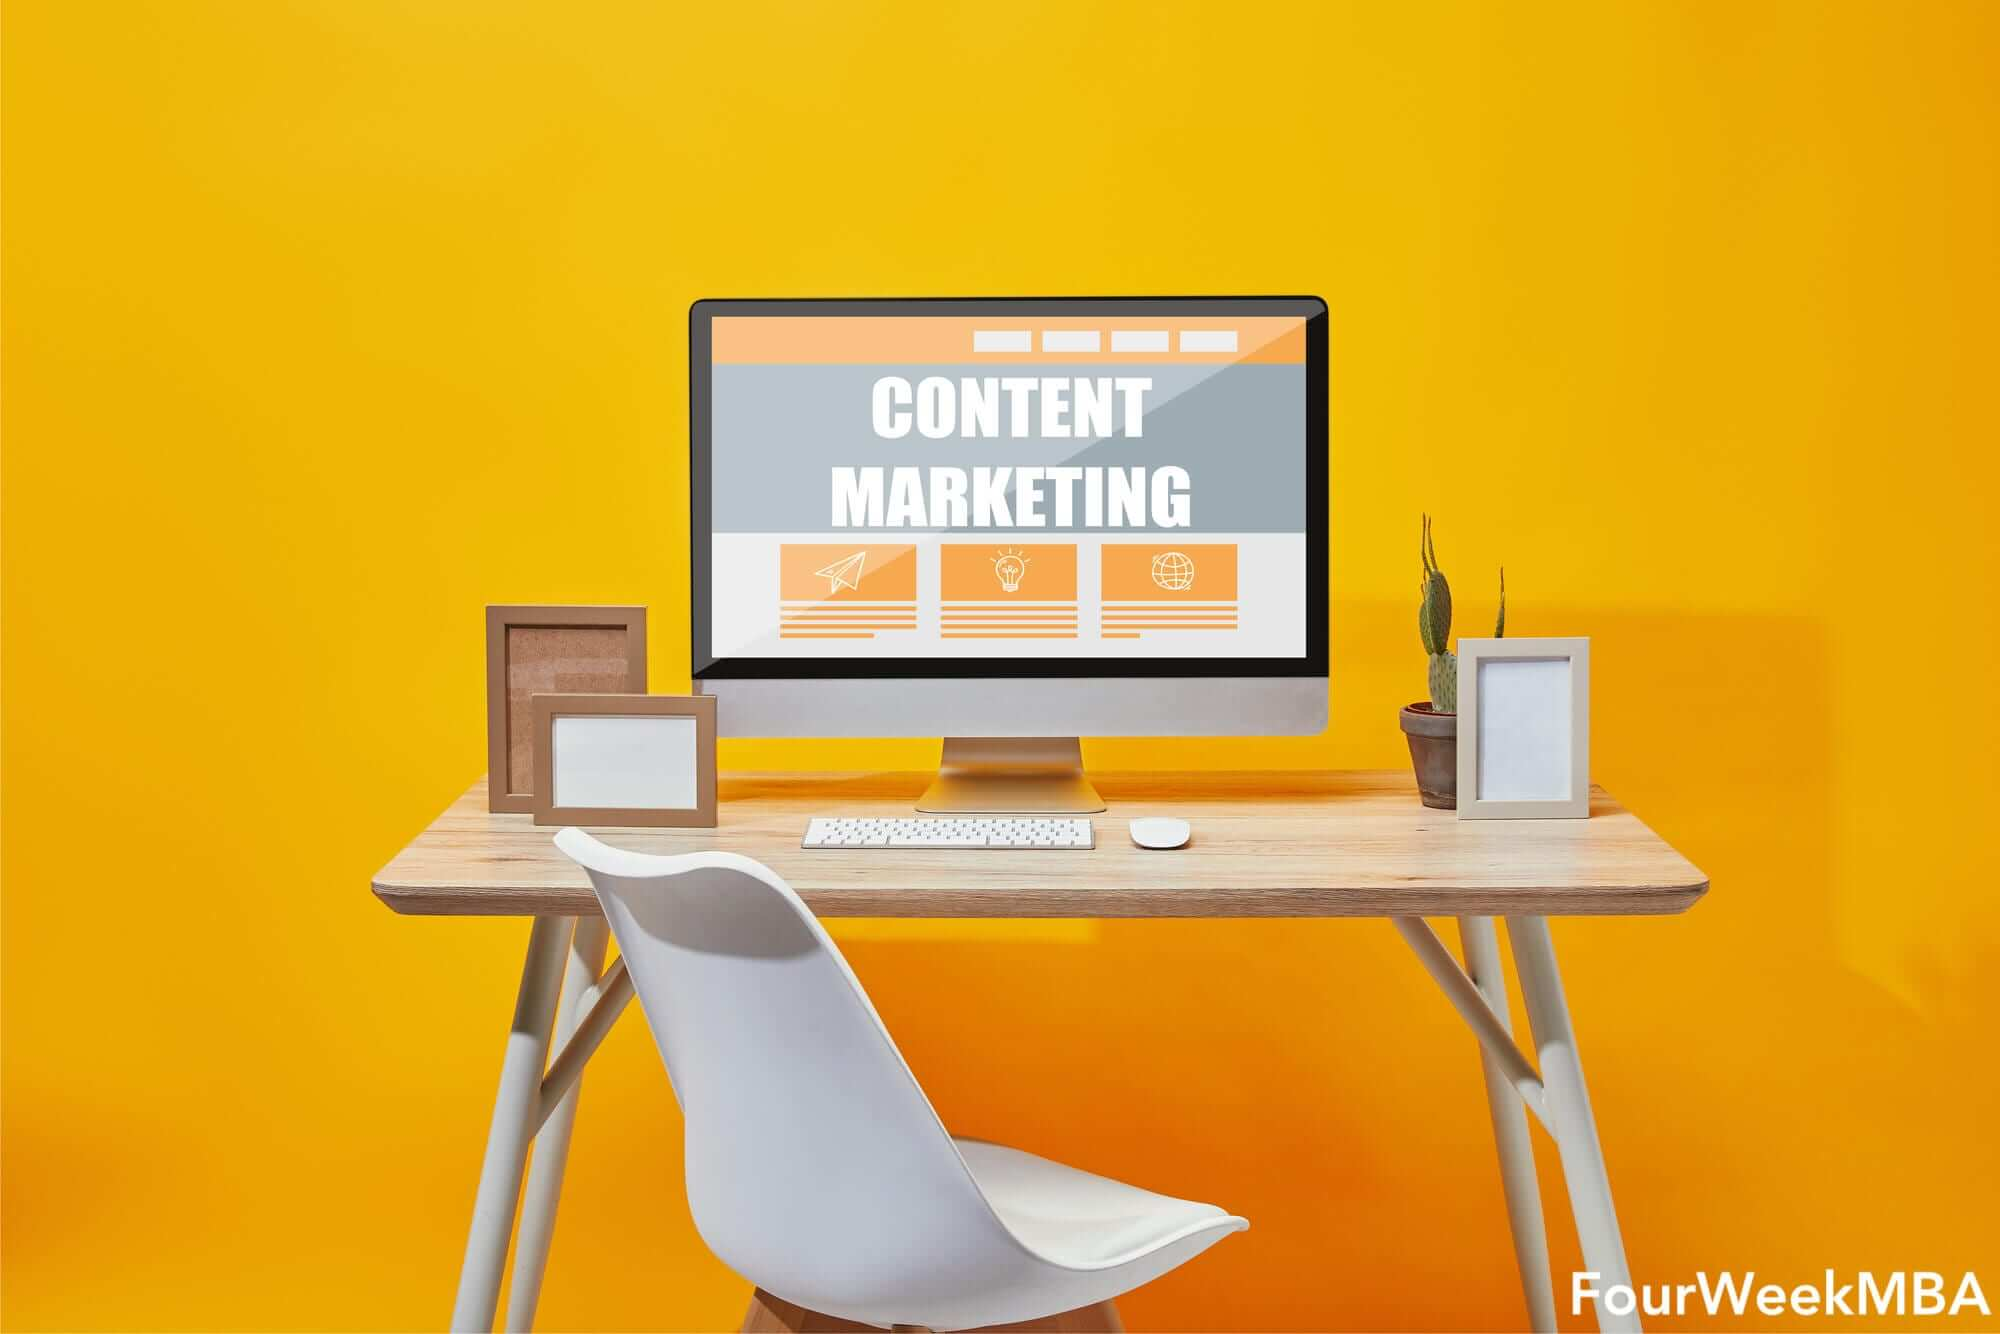 10 Actionable Content Marketing Tips for Digital Entrepreneurs In 2019